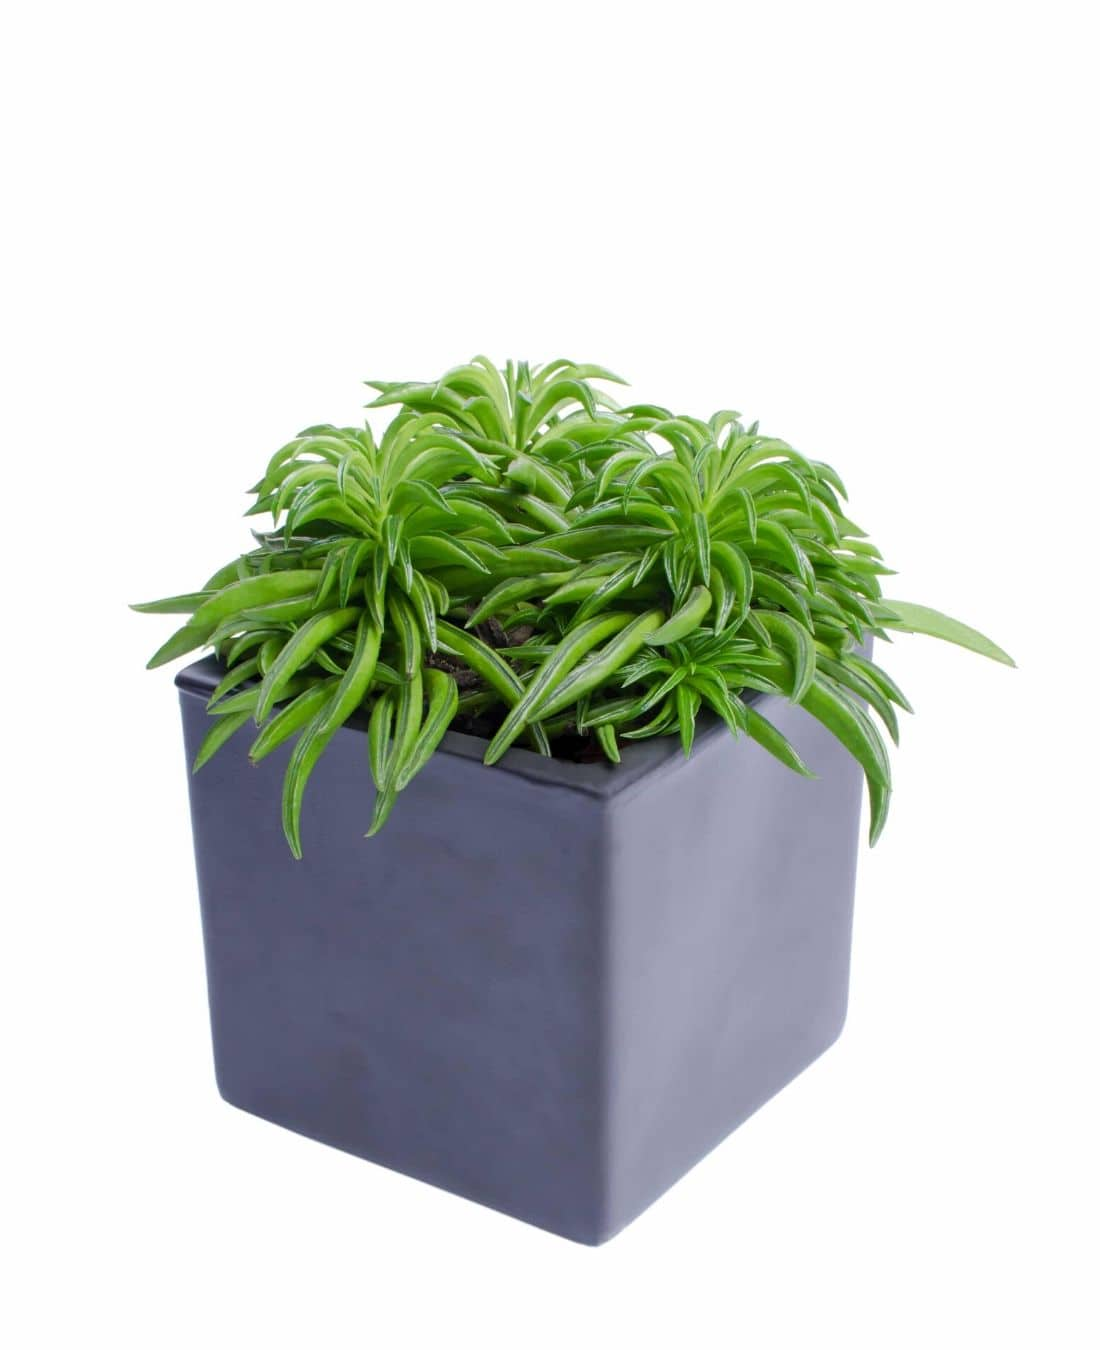 Office Desk Plants | Office Plants | Benefits Of Plants In The Office | ImpeccaBuild 9